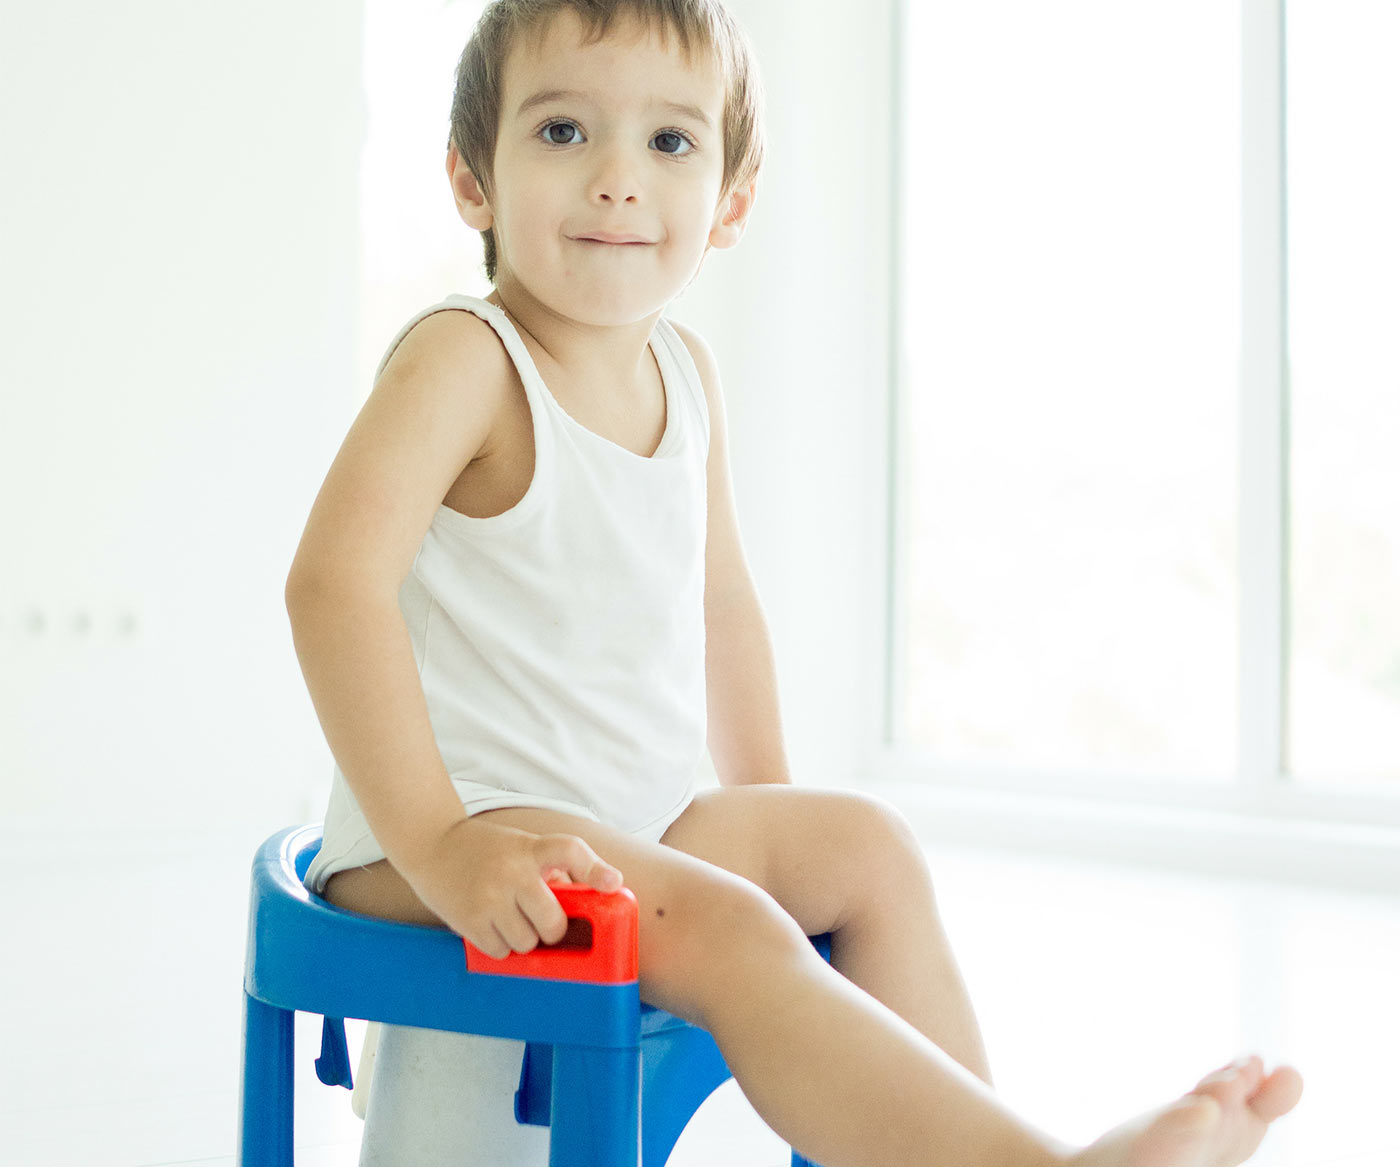 How to potty train in 3 days: Little boy sitting on a potty